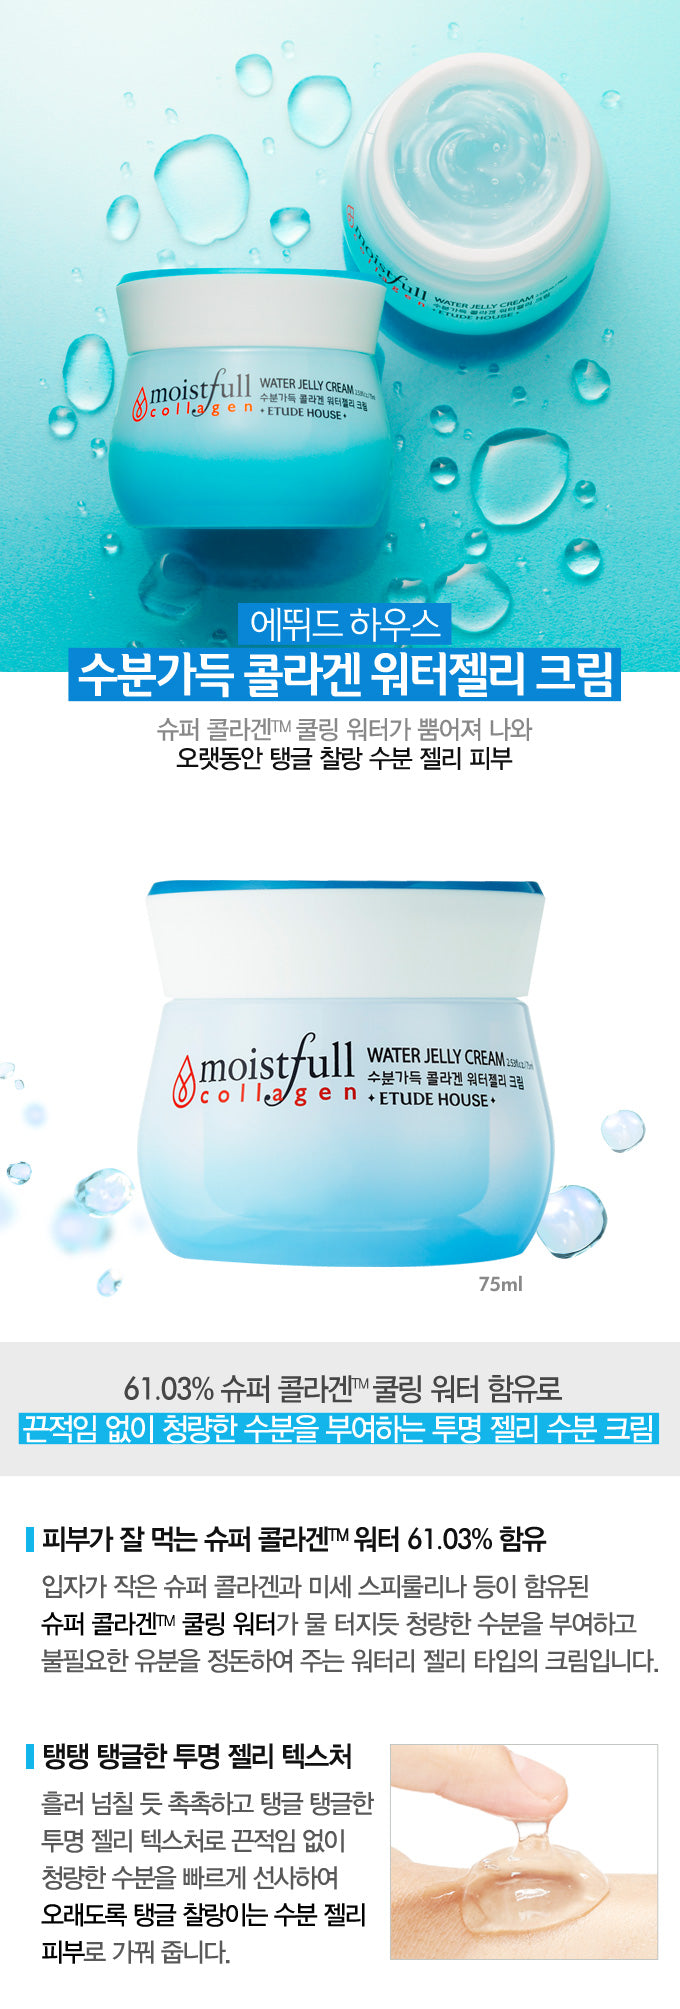 Etude House - Moistfull Collagen Water Jelly Cream